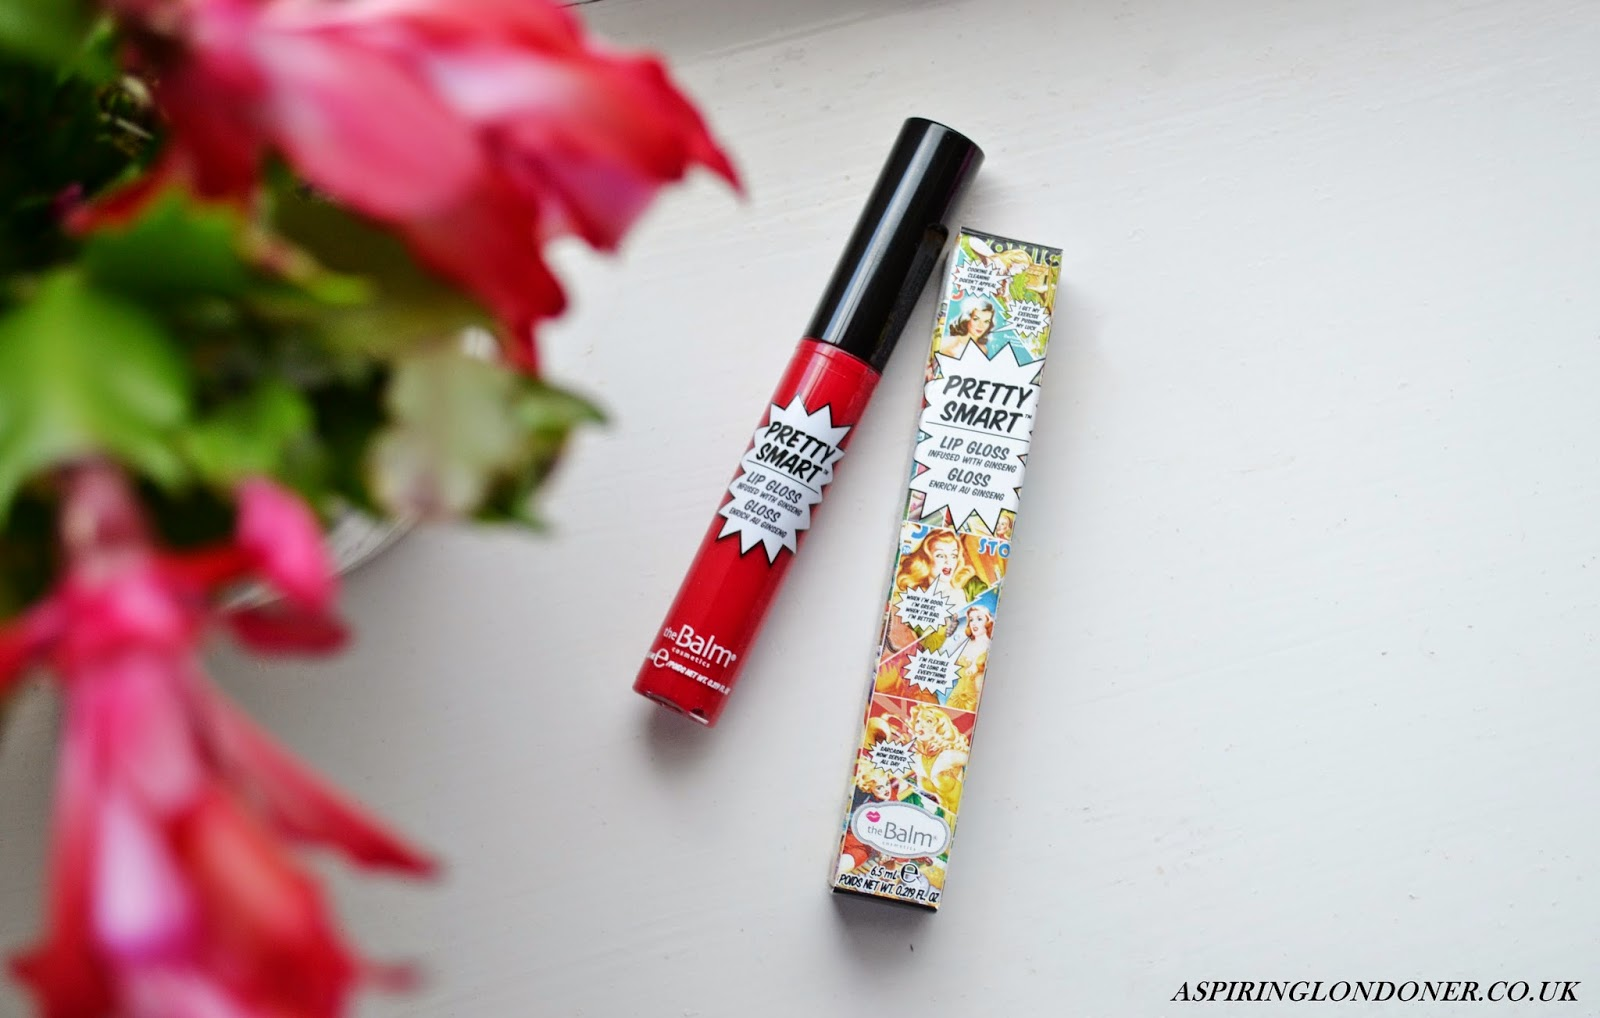 The Balm Pretty Smart Lip Gloss in Hubba Hubba Review & Swatch - Aspiring Londoner